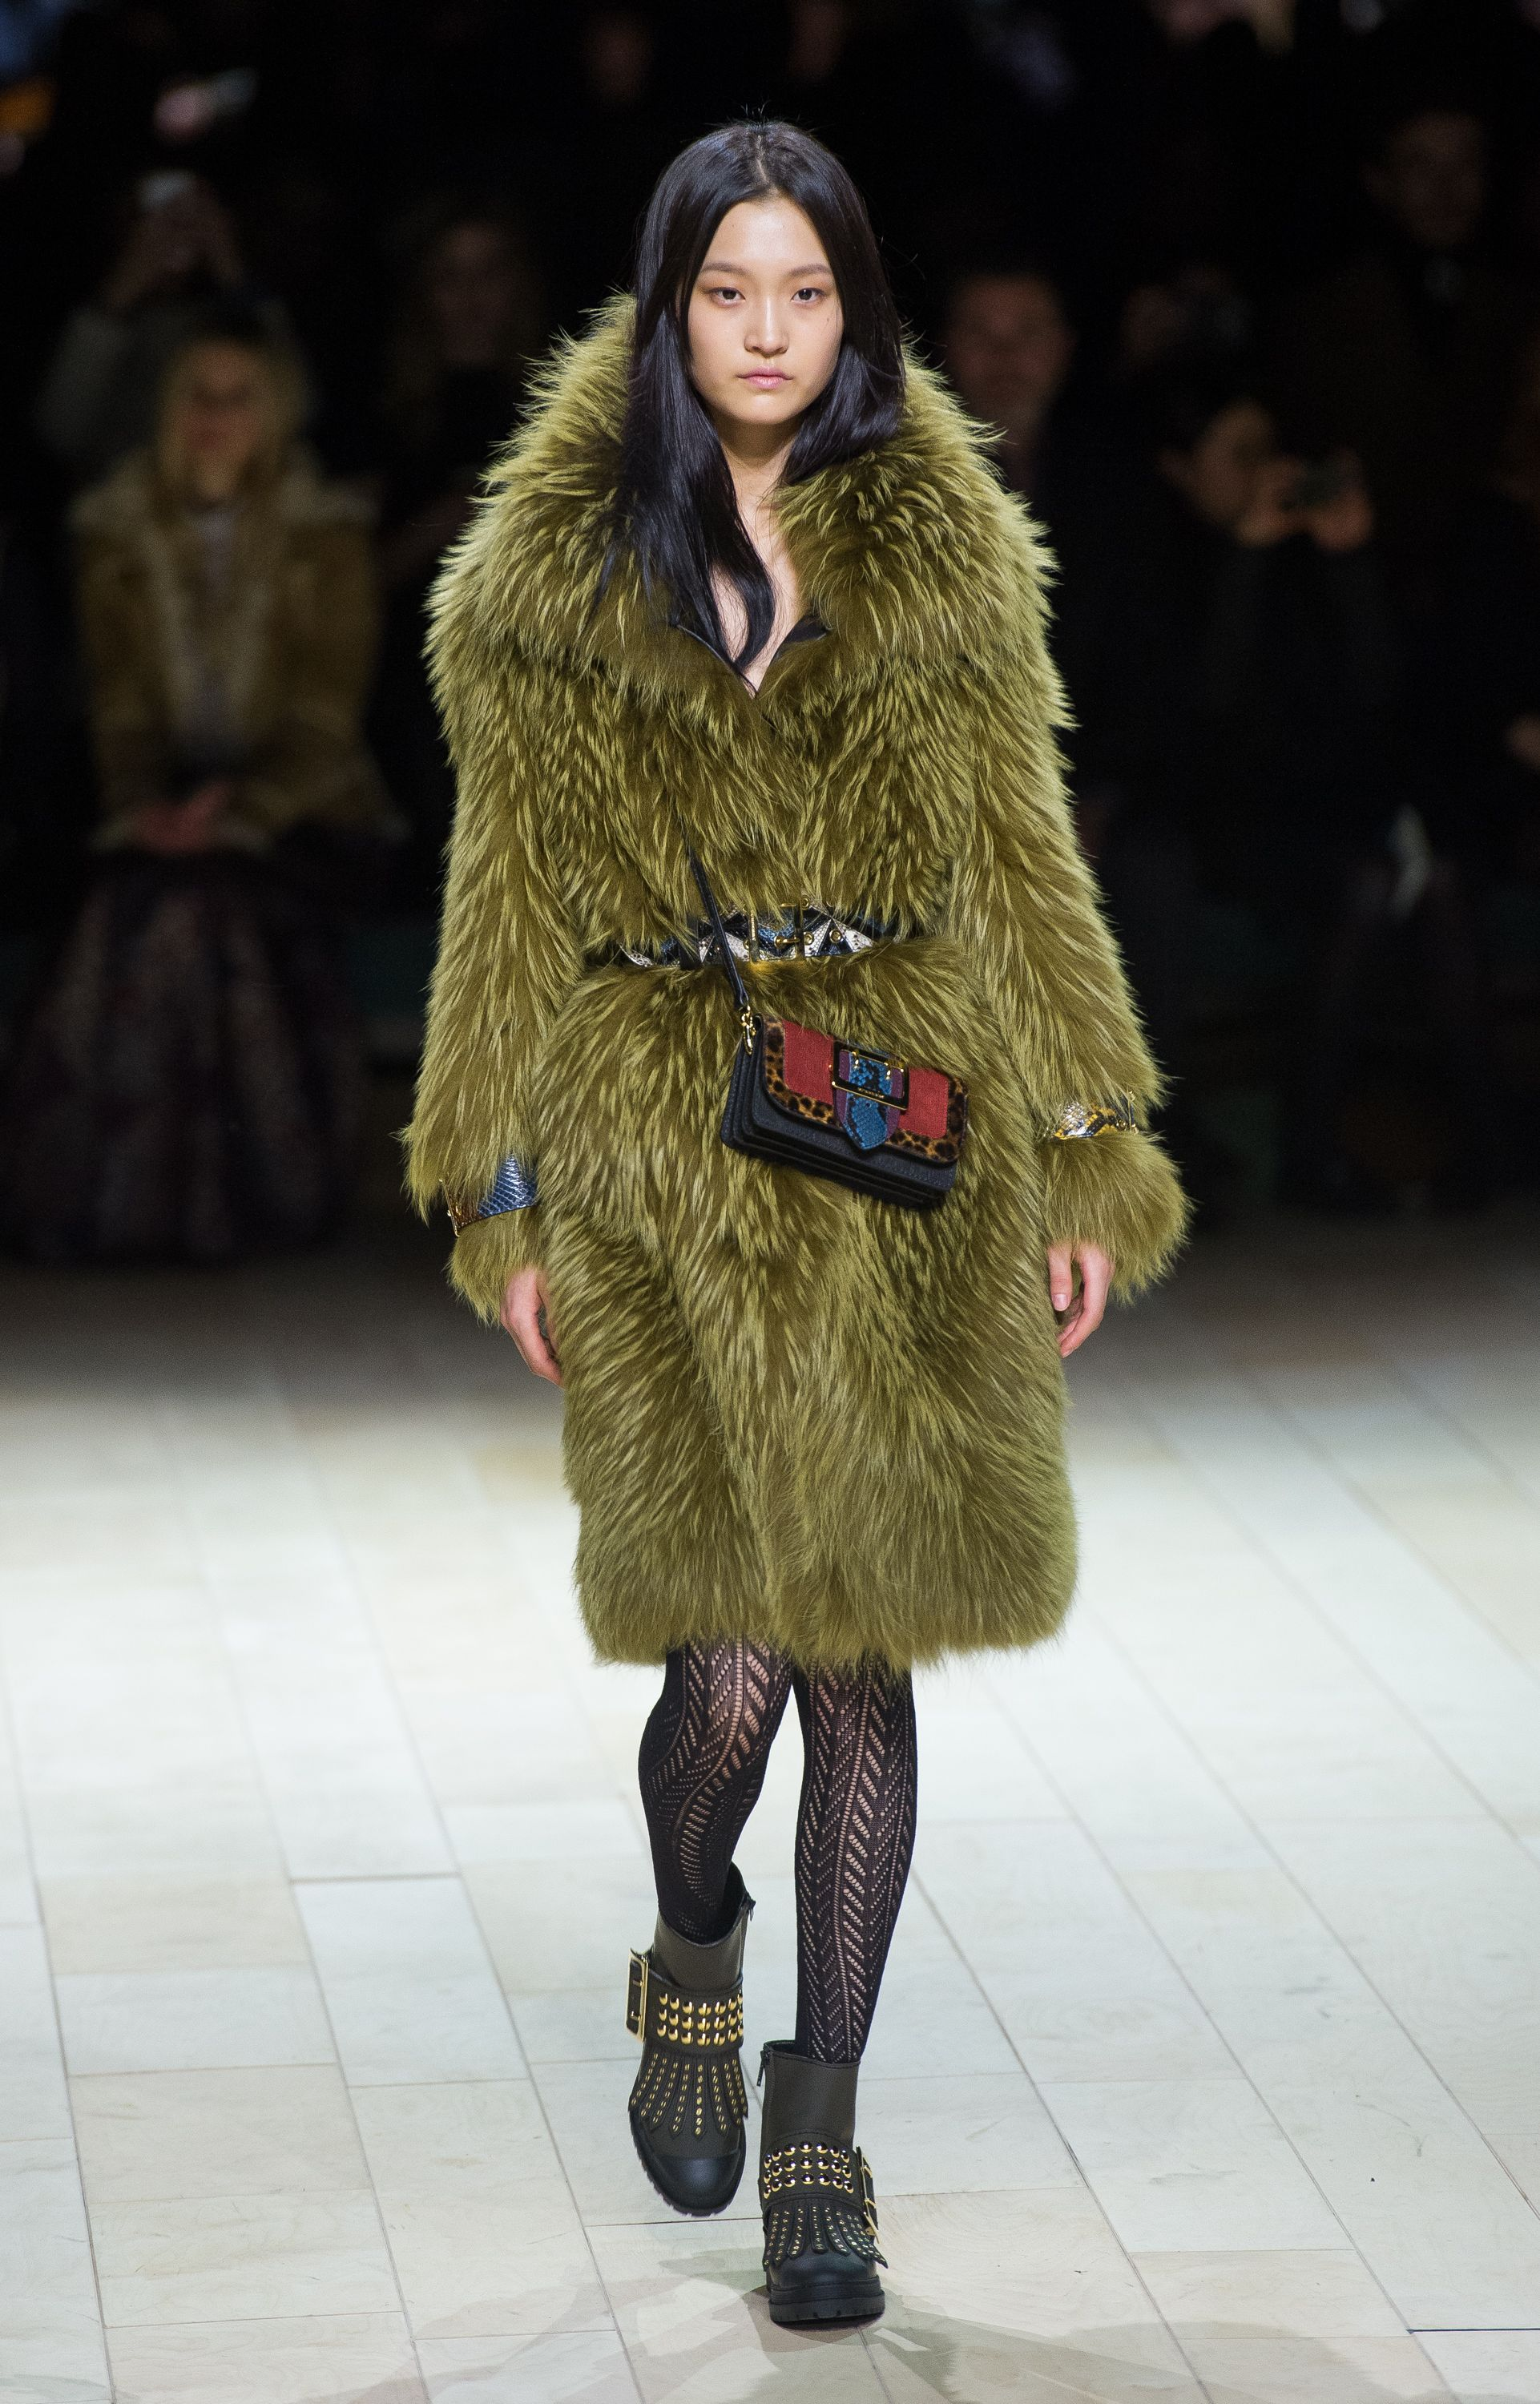 Burberry To Stop Using Fur And Burning Unsold Stock Burberry To Stop Using Fur And Burning Unsold Stock new pictures